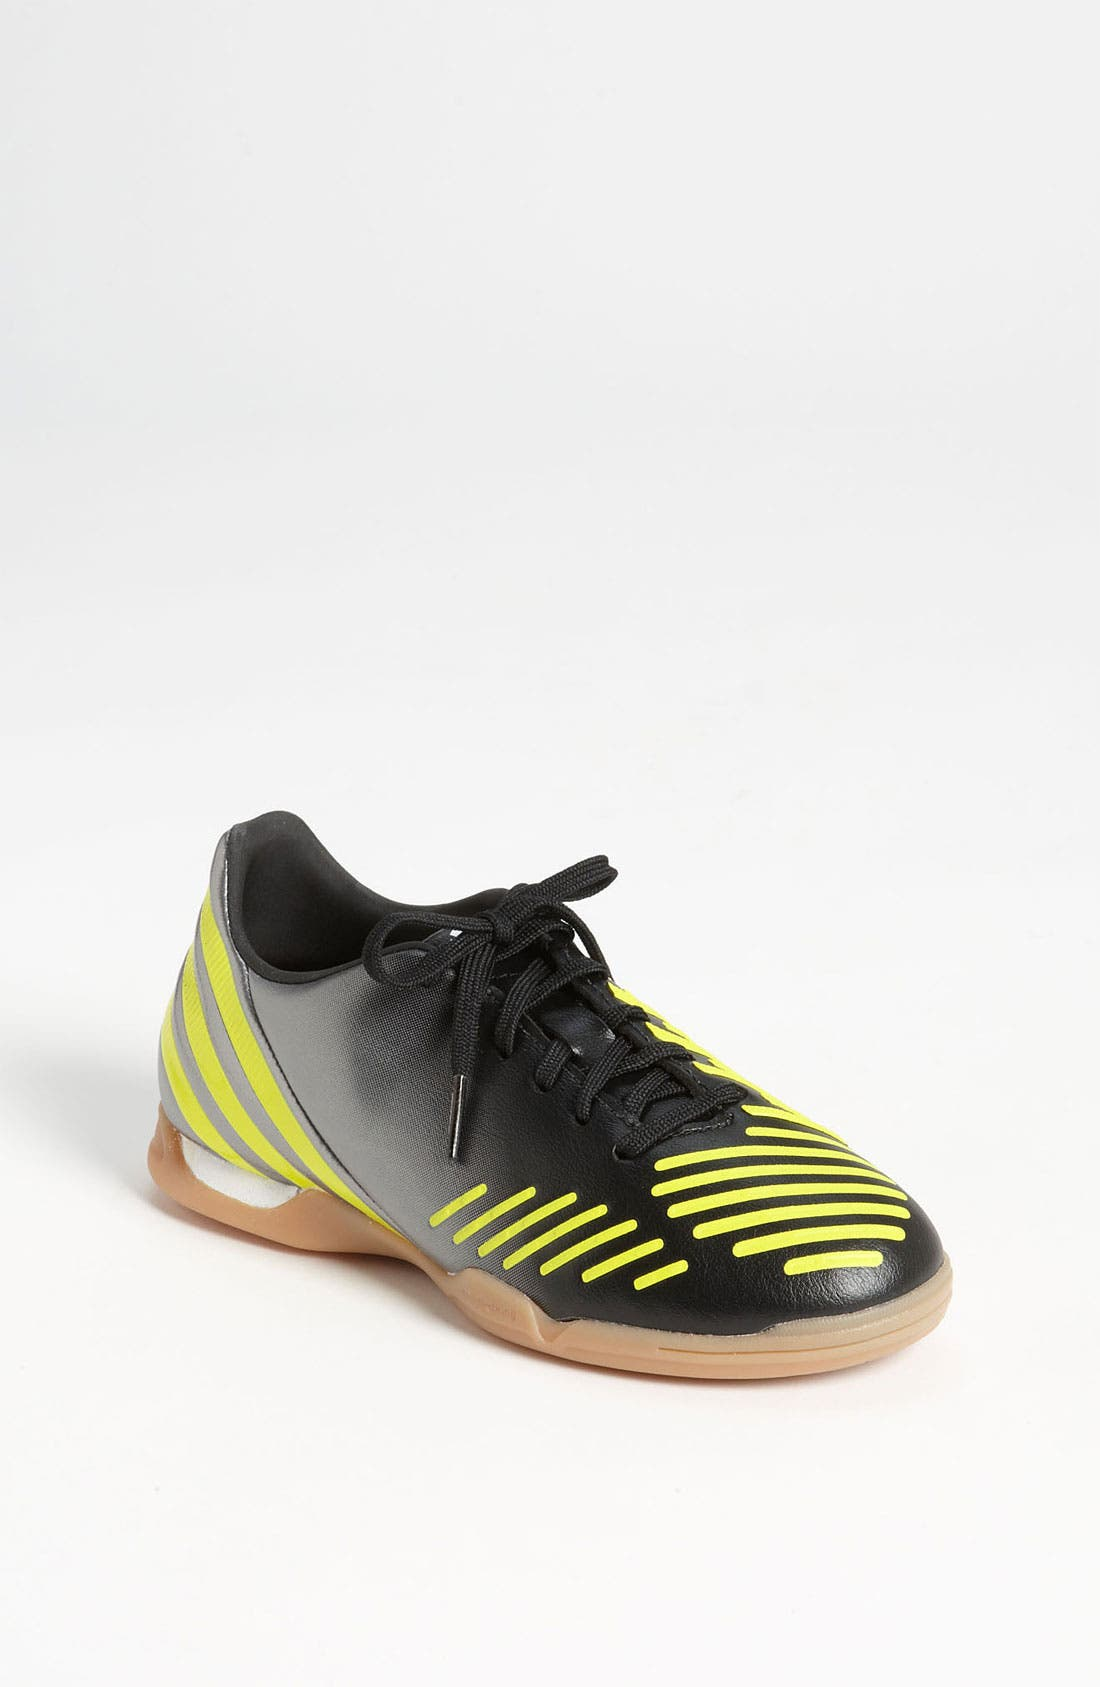 Main Image - adidas 'Predator Absolado LZ IN J' Soccer Shoe (Toddler, Little Kid & Big Kid)